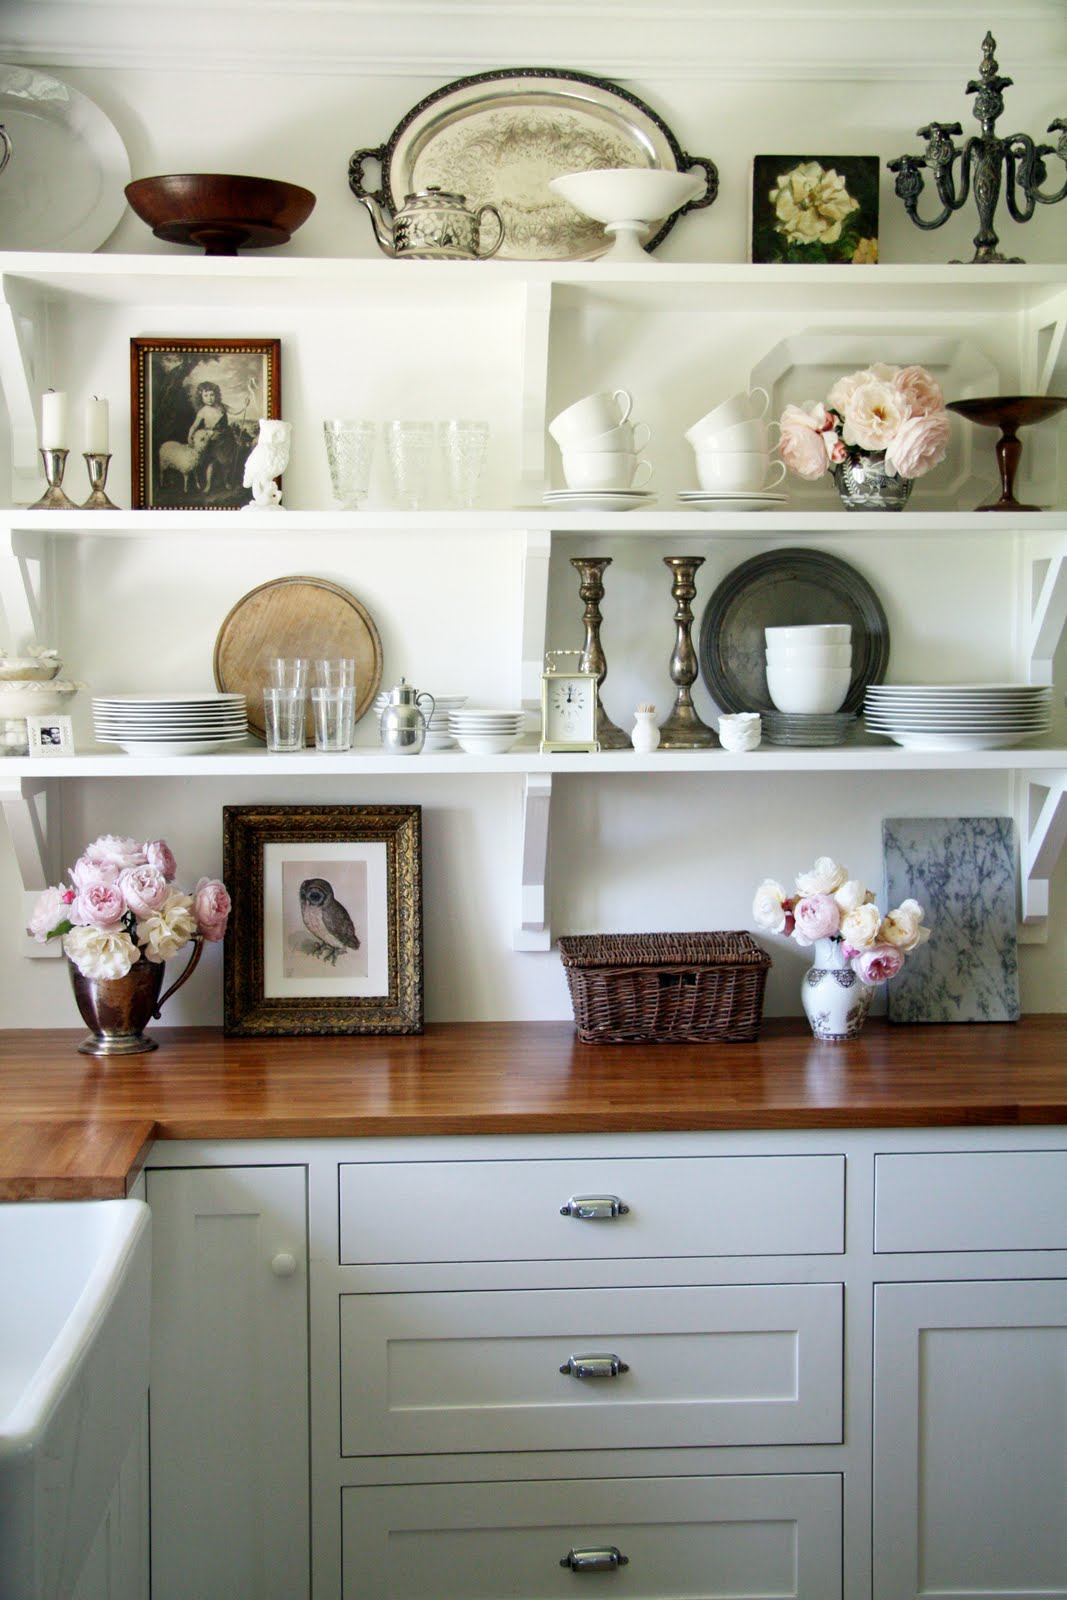 Kitchen planning and design open shelves in your kitchen for Shelf decor items